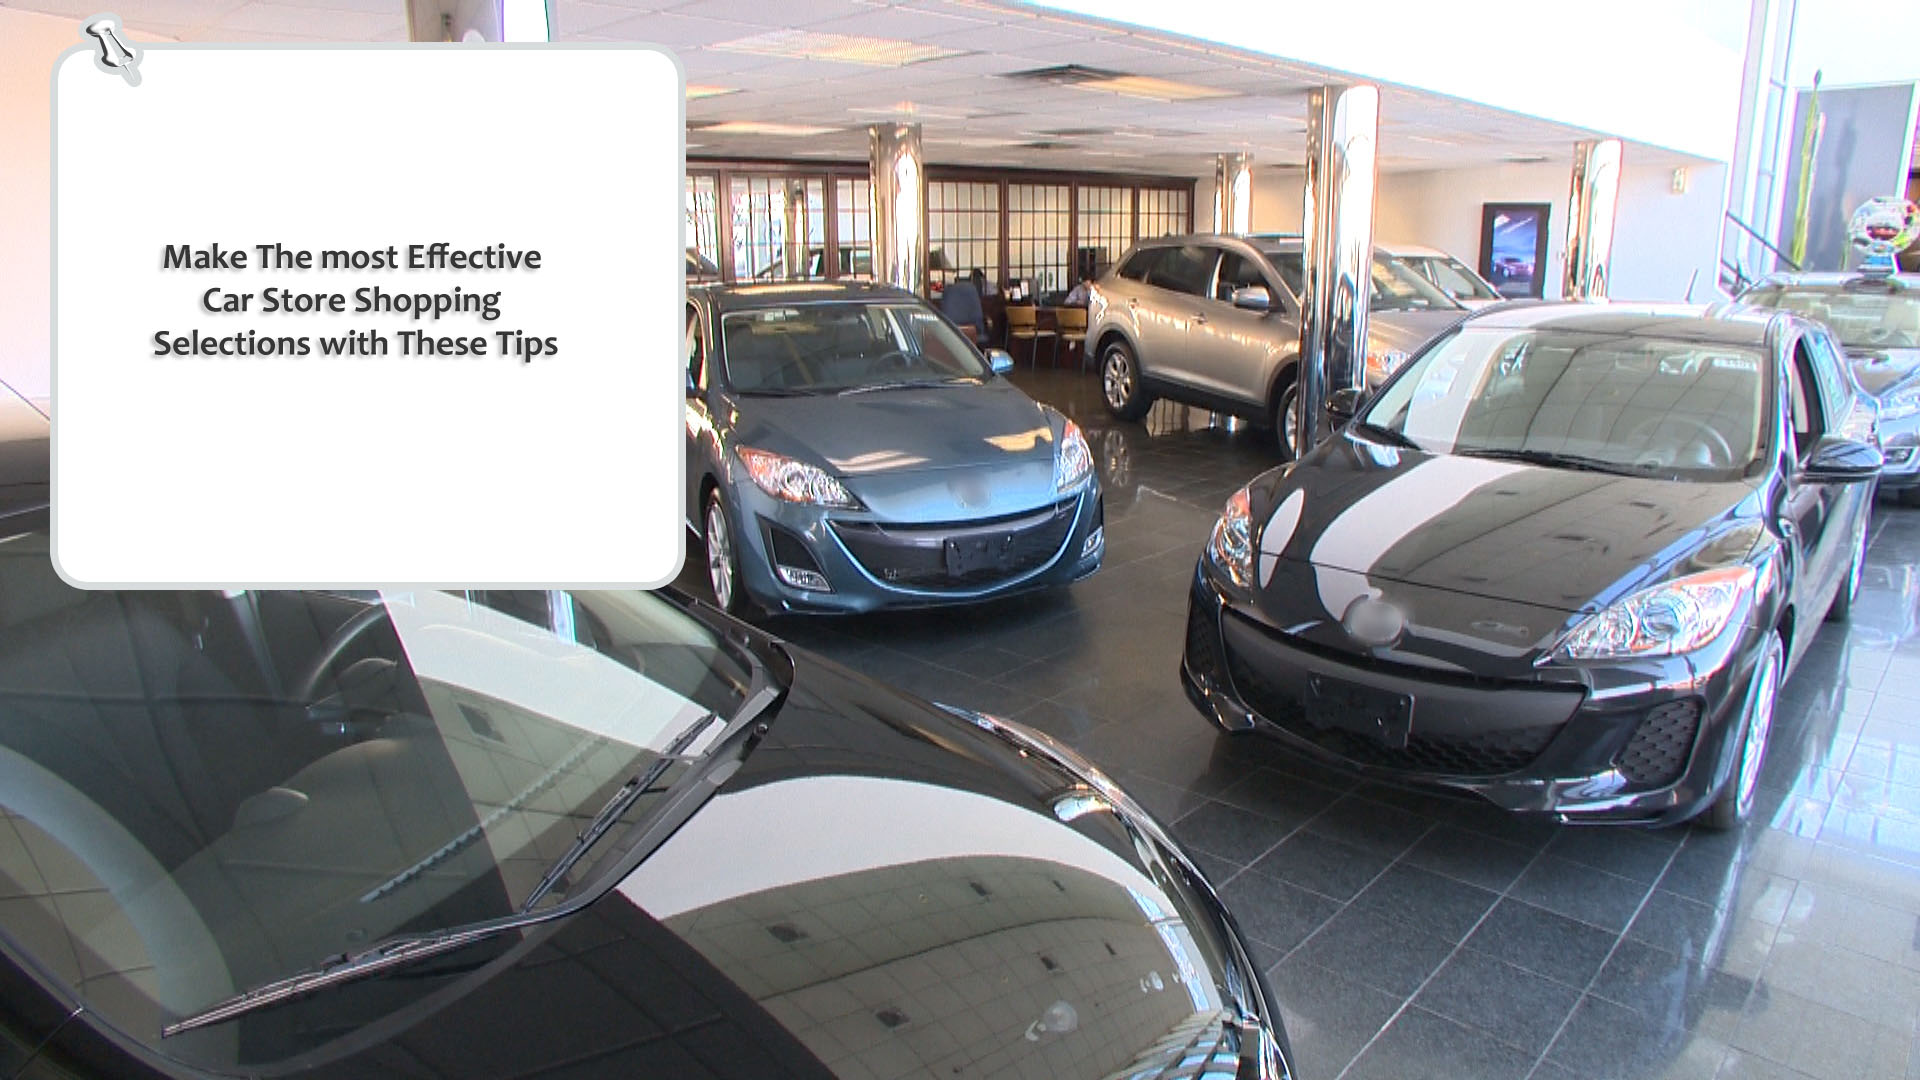 Make The most Effective Car Store shopping Selections With These Tips